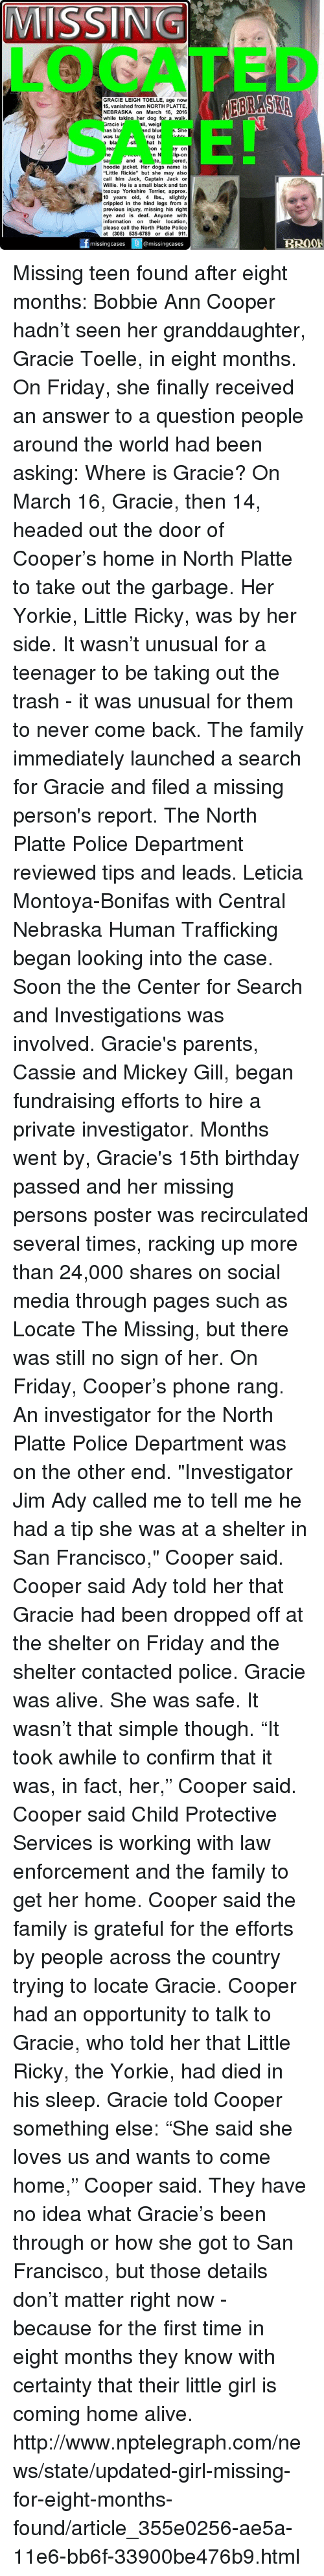 "Yorkie: MISSIIN  GRACIE LEIGH TOELLE, age now  15, vanished from NORTH PLATTE,  NEBRASKA on March 16, 2016  while takina r dog for a walk  II, weigh  racie i  as blo  nd blu  She  ring b  was la  bla  at h  On  y on  n N p-on  and  ered,  Sa  hoodie jacket. Her dogs name is  ""Little Rickie"" but she may also  call him Jack, Captain Jack or  Willie. He is a small black and tan  teacup Yorkshire Terrier, approx  10 years old, 4 lbs., slightly  crippled in the hind legs from a  previous injury, missing his right  eye and is deaf. Anyone with  information on their location,  please call the North Platte Police  at (308) 535-6789 or dial 911  missing cases  @missing cases Missing teen found after eight months: Bobbie Ann Cooper hadn't seen her granddaughter, Gracie Toelle, in eight months. On Friday, she finally received an answer to a question people around the world had been asking: Where is Gracie?  On March 16, Gracie, then 14, headed out the door of Cooper's home in North Platte to take out the garbage. Her Yorkie, Little Ricky, was by her side.  It wasn't unusual for a teenager to be taking out the trash - it was unusual for them to never come back.  The family immediately launched a search for Gracie and filed a missing person's report.  The North Platte Police Department reviewed tips and leads. Leticia Montoya-Bonifas with Central Nebraska Human Trafficking began looking into the case. Soon the the Center for Search and Investigations was involved.  Gracie's parents, Cassie and Mickey Gill, began fundraising efforts to hire a private investigator.  Months went by, Gracie's 15th birthday passed and her missing persons poster was recirculated several times, racking up more than 24,000 shares on social media through pages such as Locate The Missing, but there was still no sign of her.  On Friday, Cooper's phone rang. An investigator for the North Platte Police Department was on the other end.  ""Investigator Jim Ady called me to tell me he had a tip she was at a shelter in San Francisco,"" Cooper said.  Cooper said Ady told her that Gracie had been dropped off at the shelter on Friday and the shelter contacted police. Gracie was alive. She was safe. It wasn't that simple though.  ""It took awhile to confirm that it was, in fact, her,"" Cooper said.  Cooper said Child Protective Services is working with law enforcement and the family to get her home.  Cooper said the family is grateful for the efforts by people across the country trying to locate Gracie.  Cooper had an opportunity to talk to Gracie, who told her that Little Ricky, the Yorkie, had died in his sleep. Gracie told Cooper something else: ""She said she loves us and wants to come home,"" Cooper said.  They have no idea what Gracie's been through or how she got to San Francisco, but those details don't matter right now - because for the first time in eight months they know with certainty that their little girl is coming home alive. http://www.nptelegraph.com/news/state/updated-girl-missing-for-eight-months-found/article_355e0256-ae5a-11e6-bb6f-33900be476b9.html"